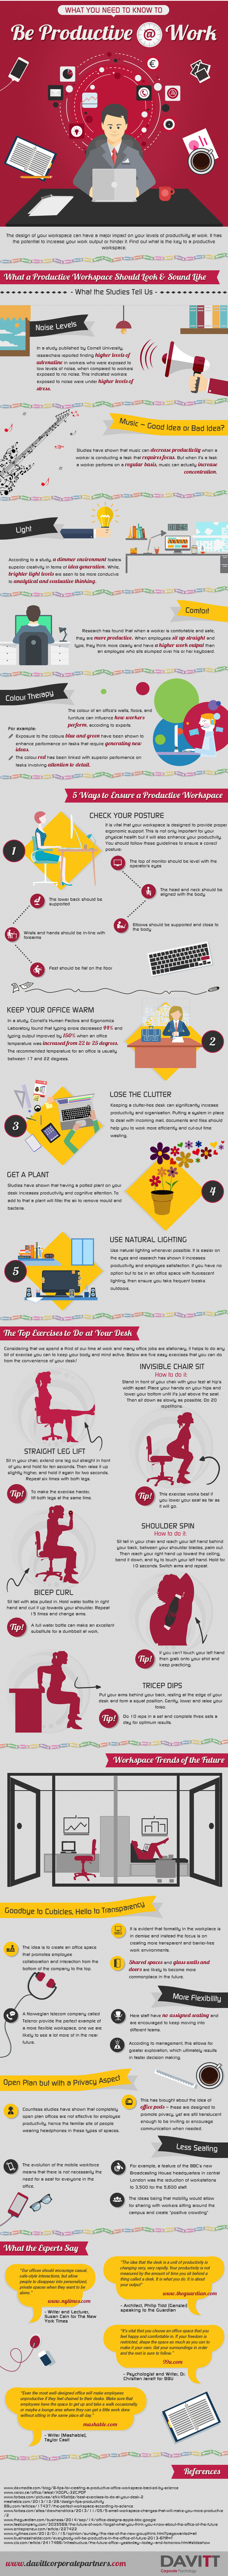 how-to-be-productive-at-work-infographic (light)